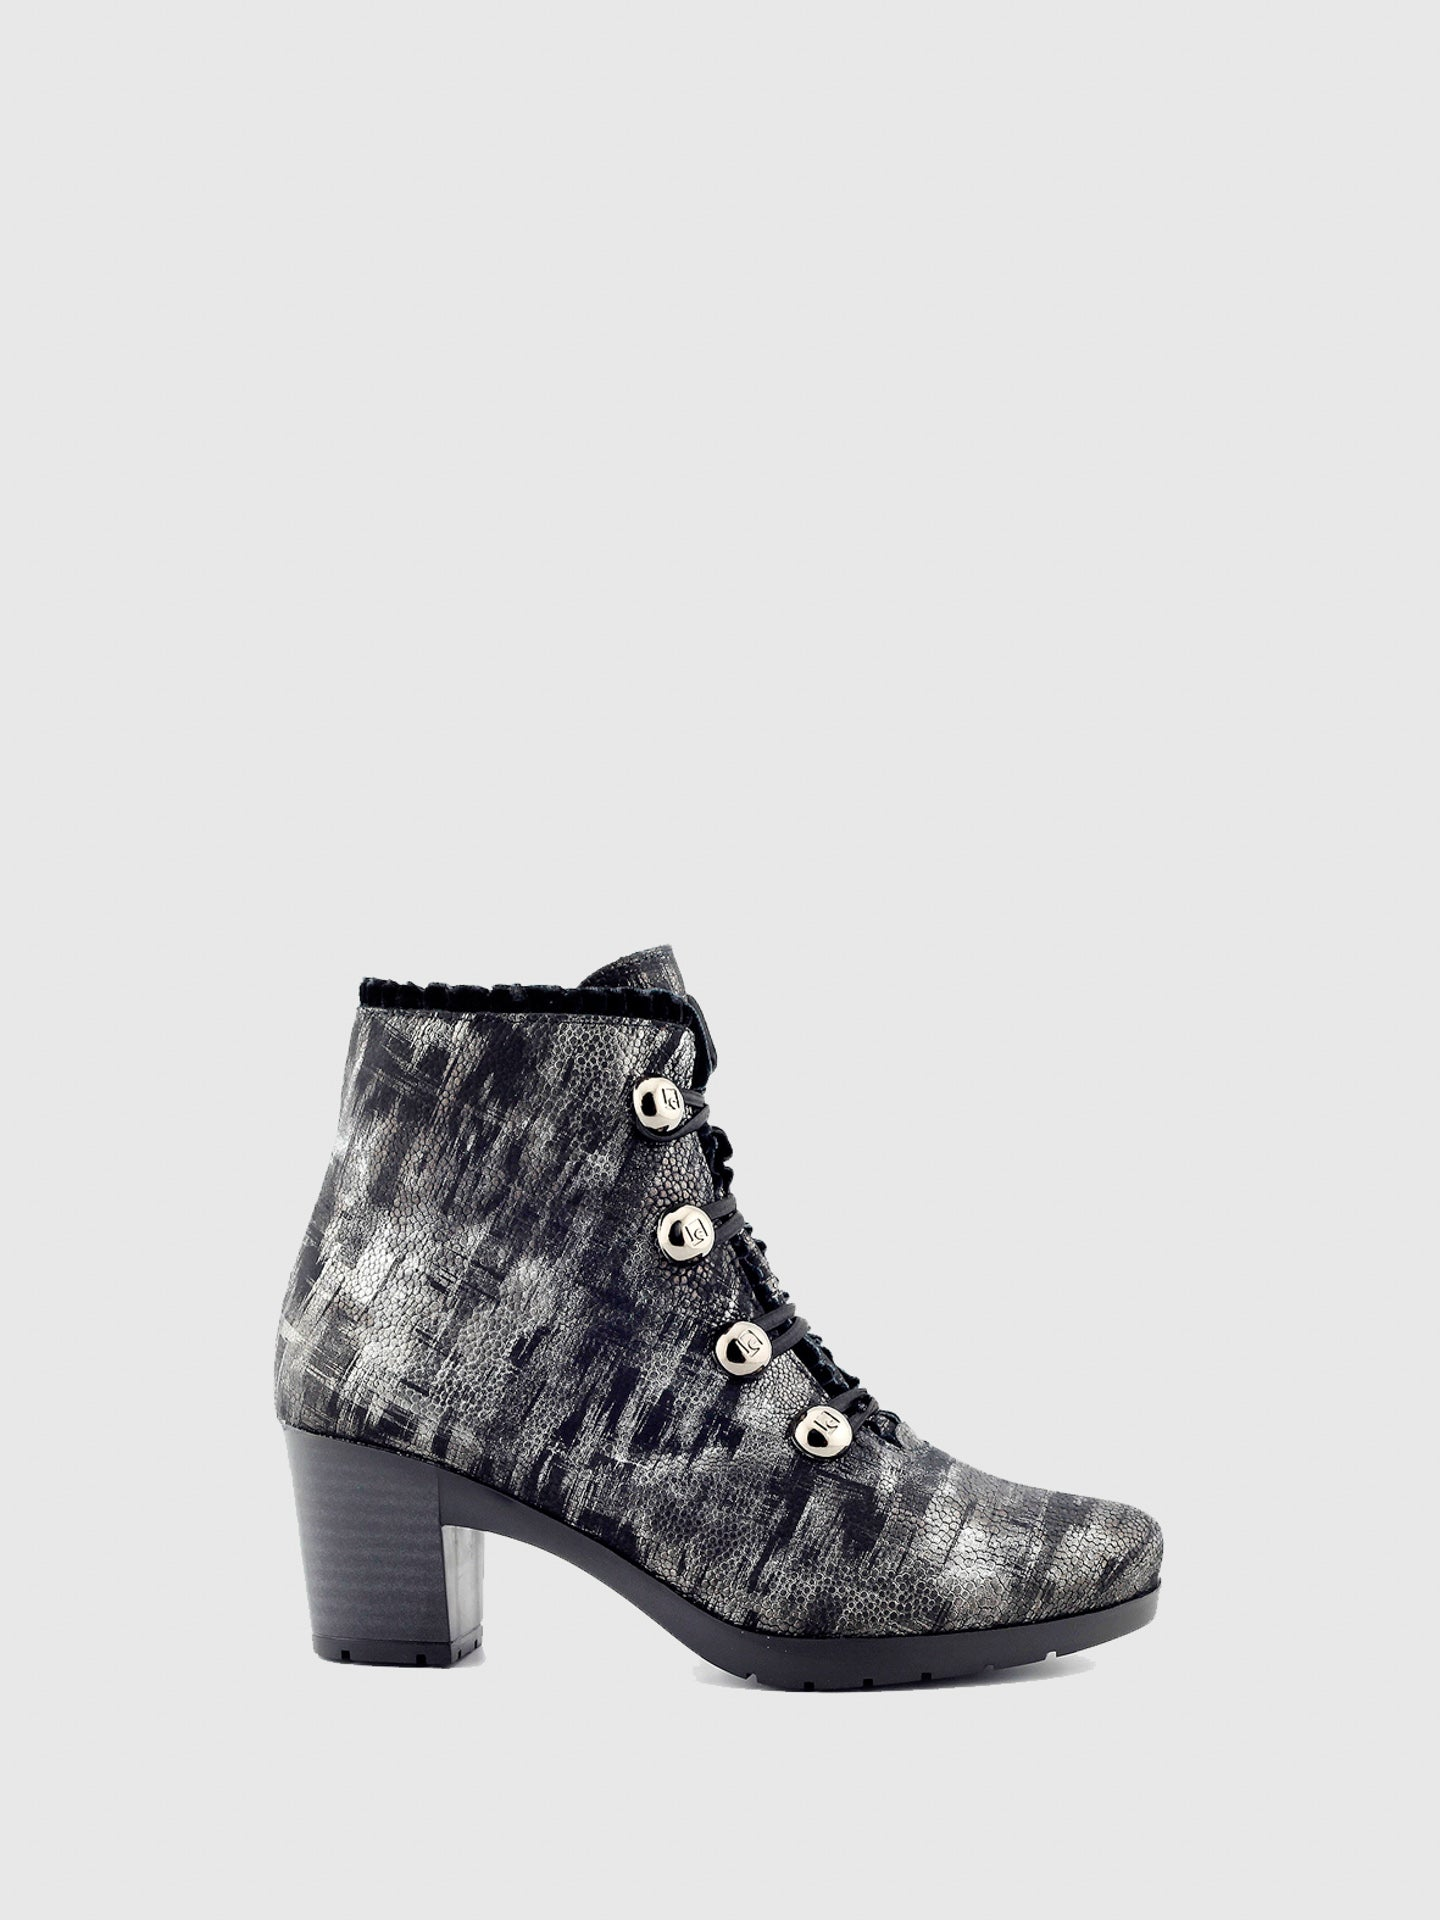 Jose Saenz Silver Black Zip Up Ankle Boots